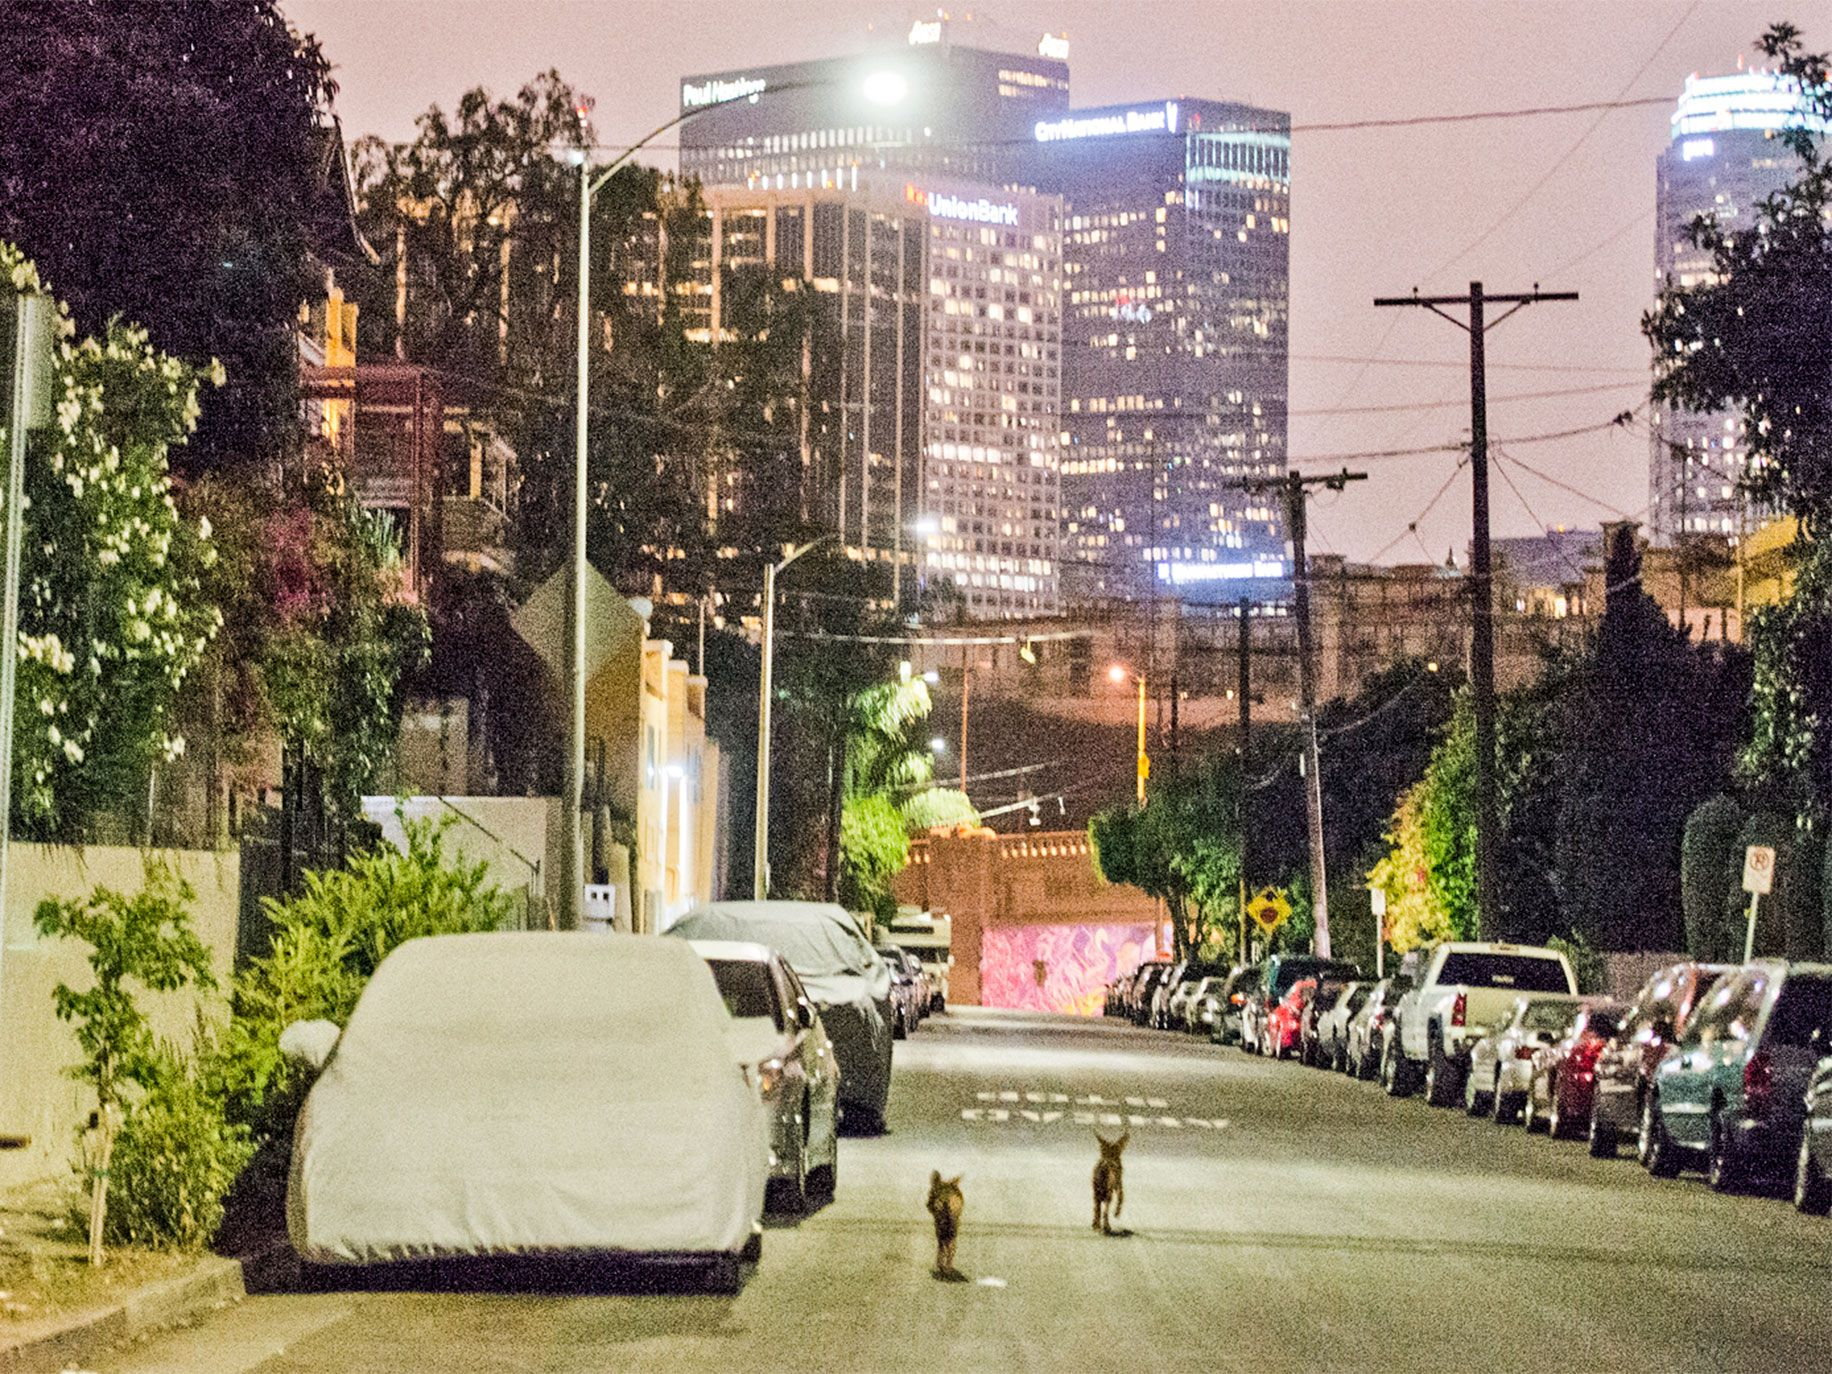 Increasingly brazen and unafraid of human contact, a pair of coyotes walk down a street in Los Angeles.